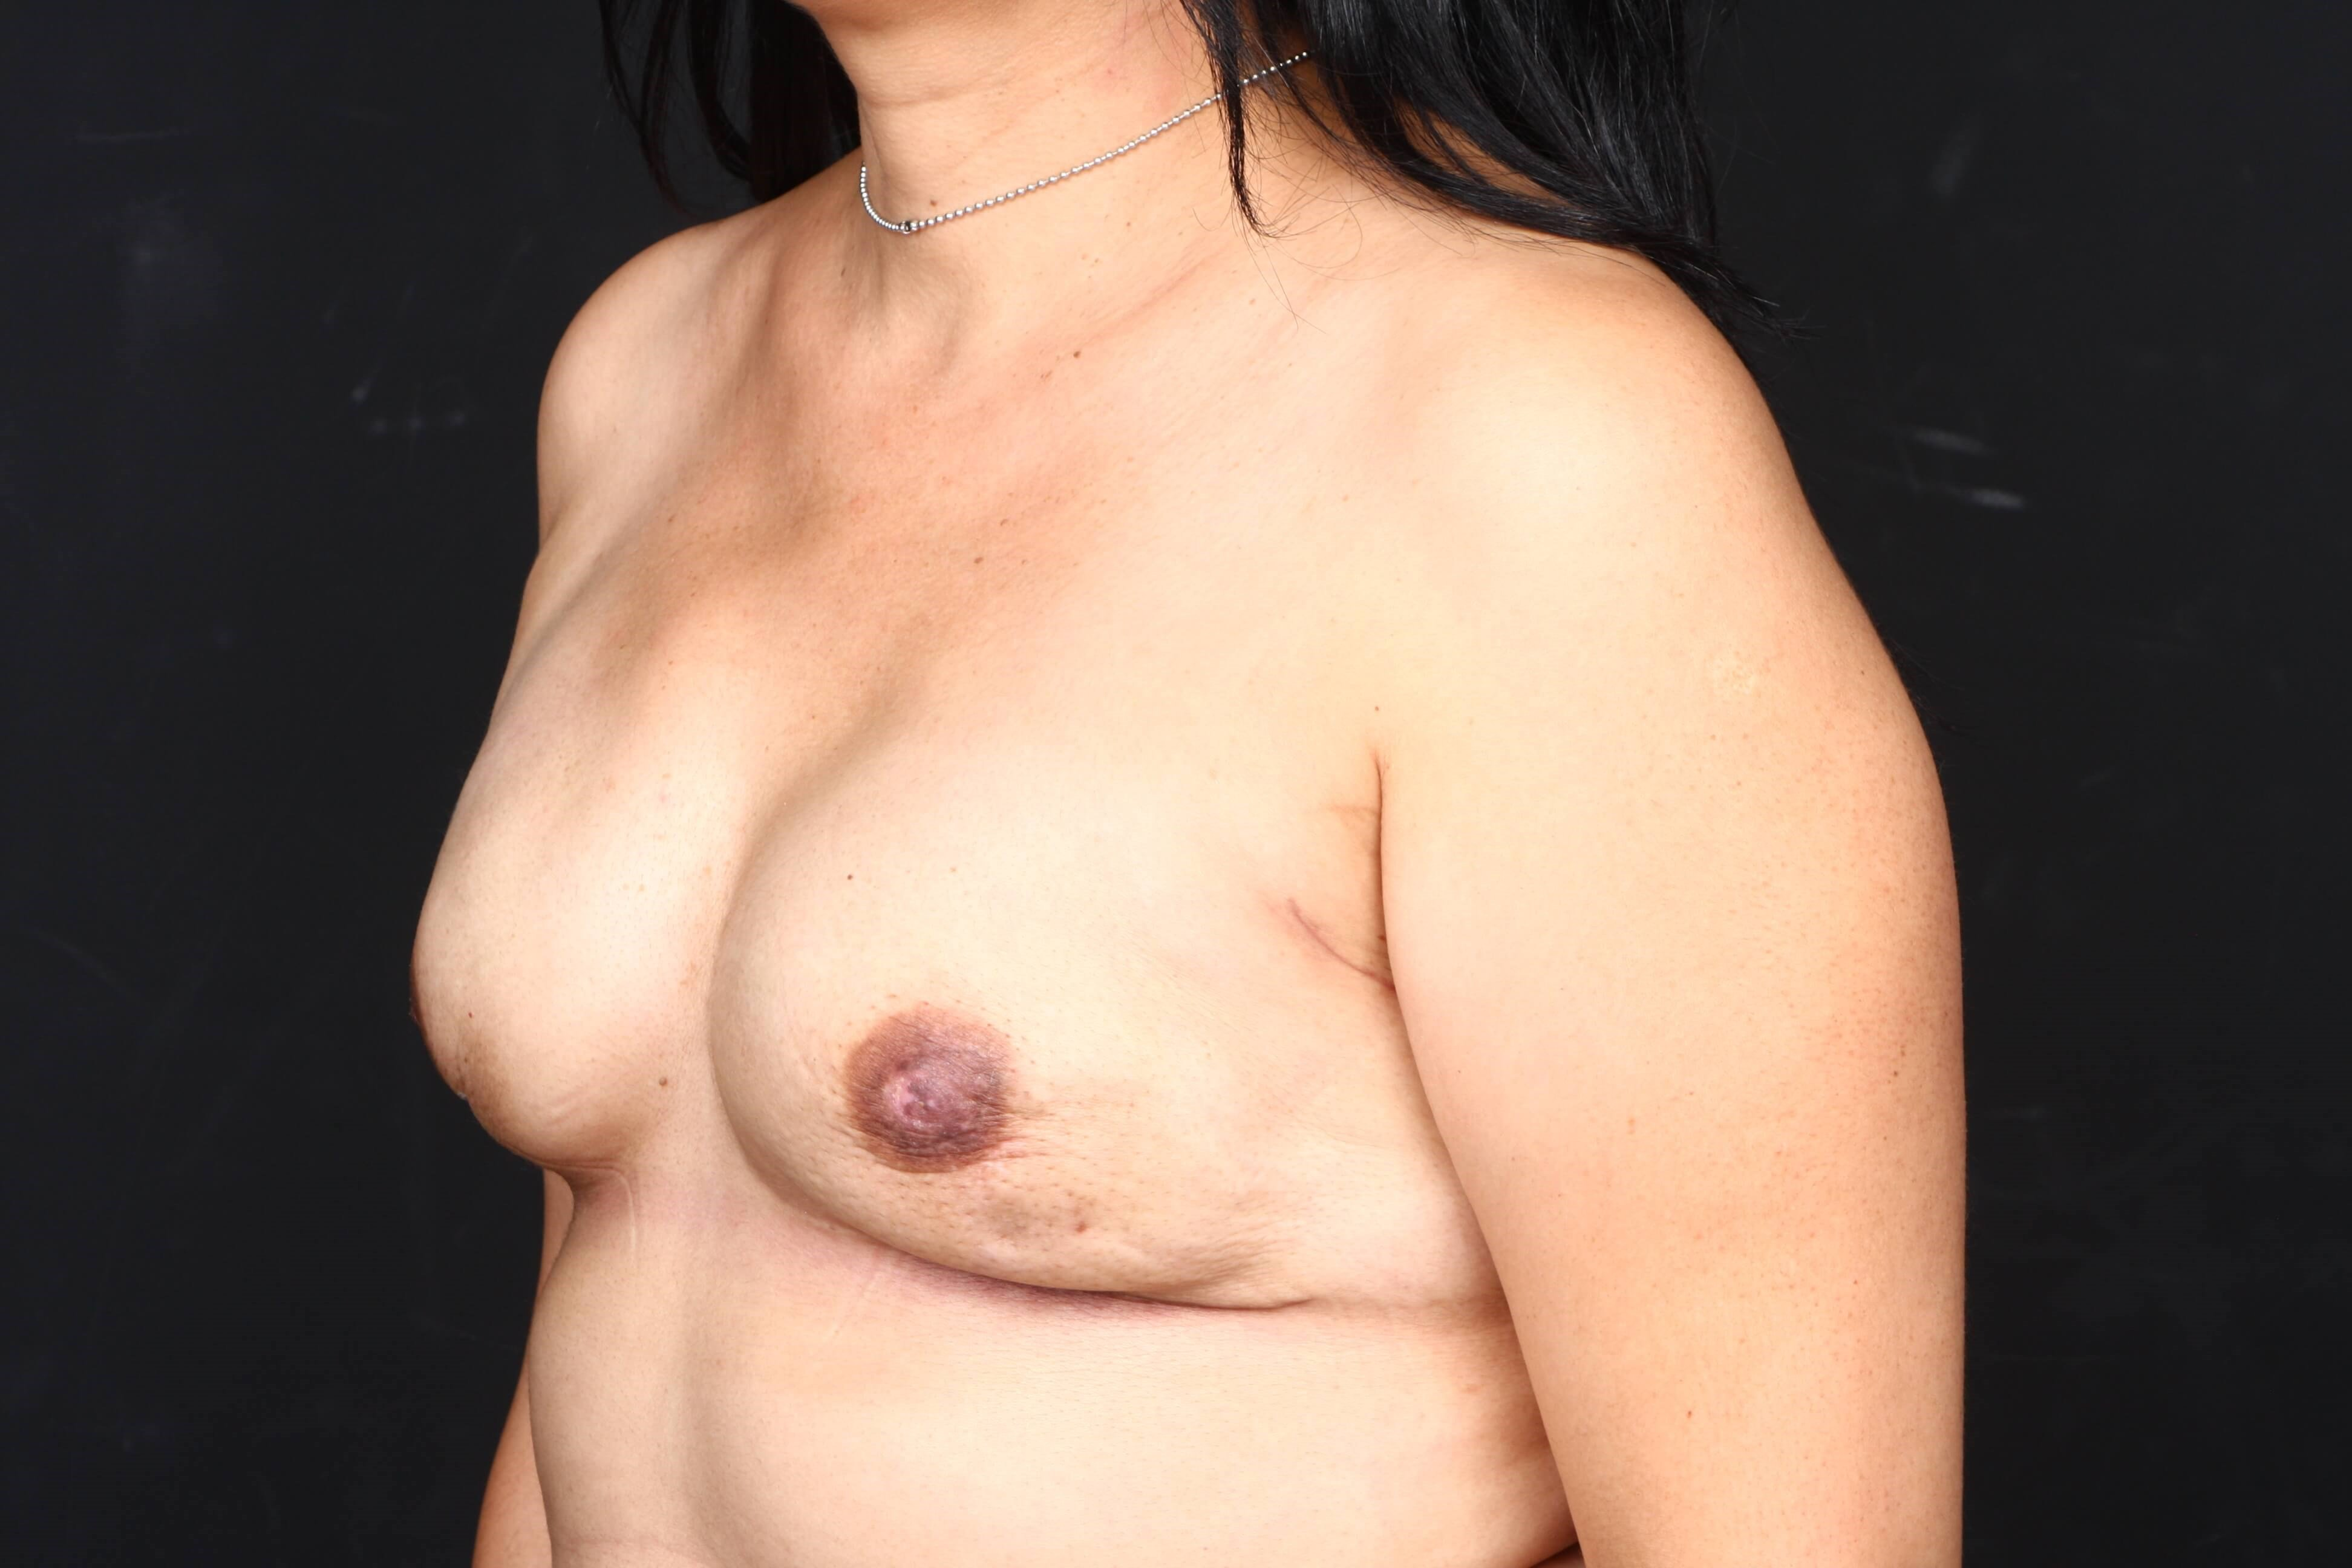 52 y/o breast reconstruction Side view tissue expanders